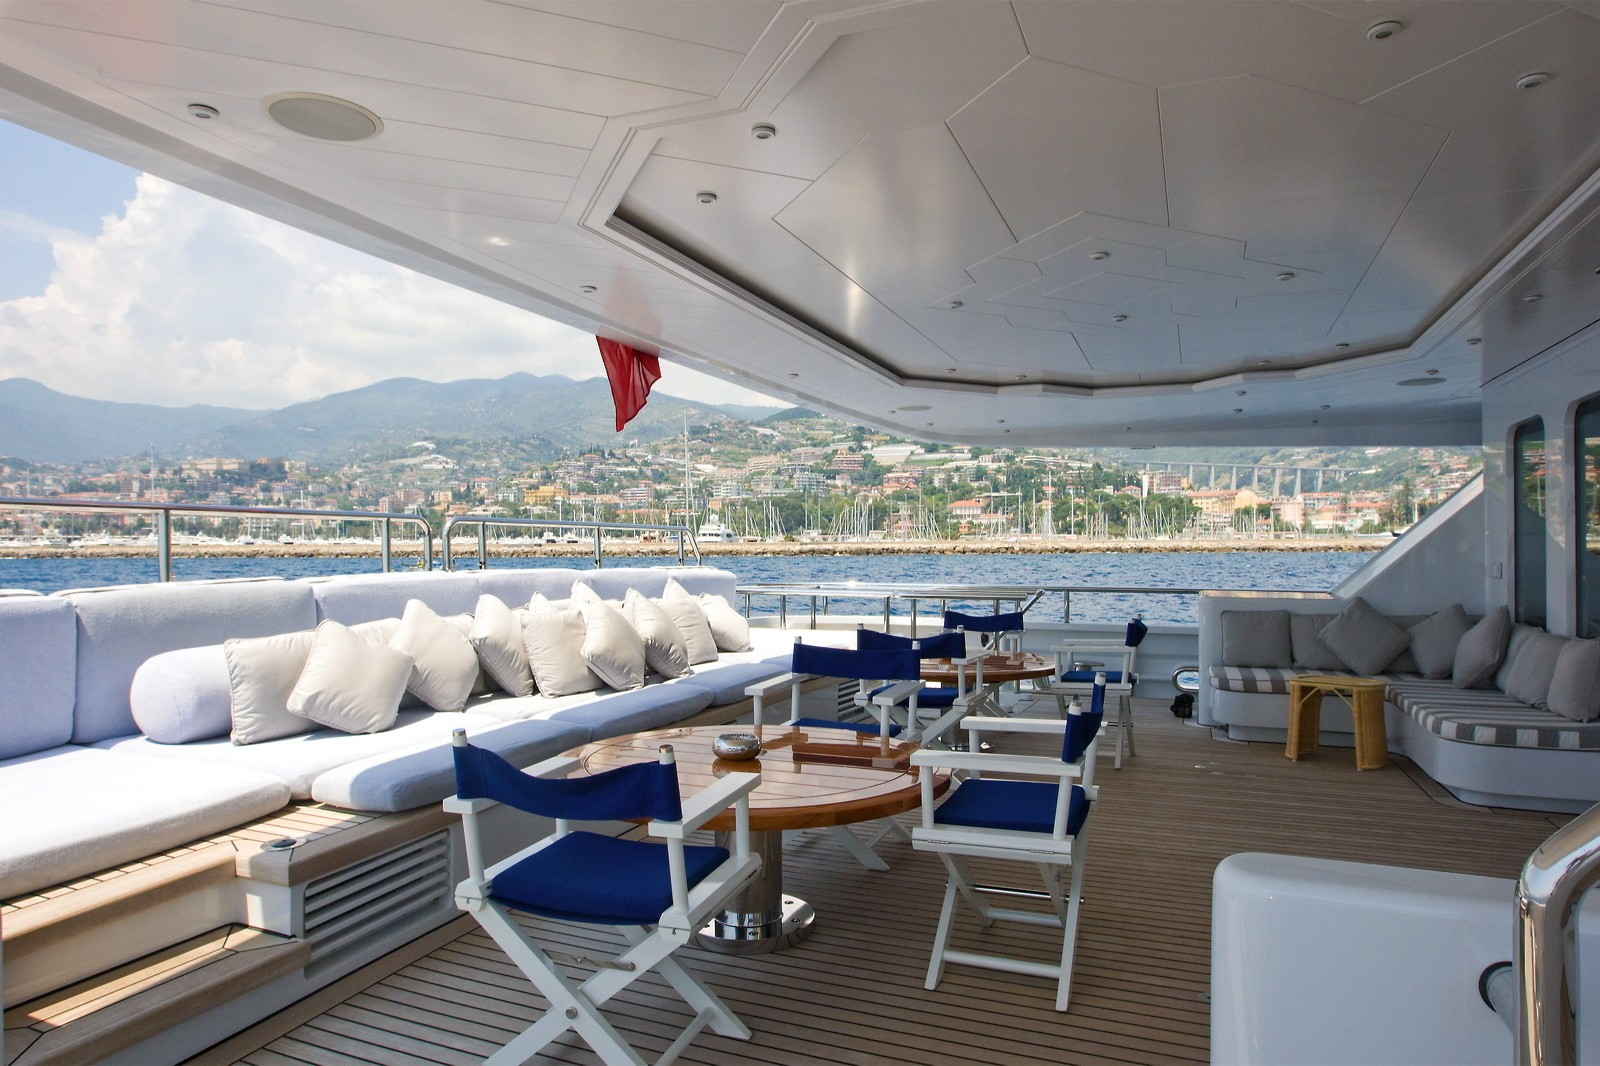 Sitting: Yacht DIAMOND A's Aft Deck Pictured